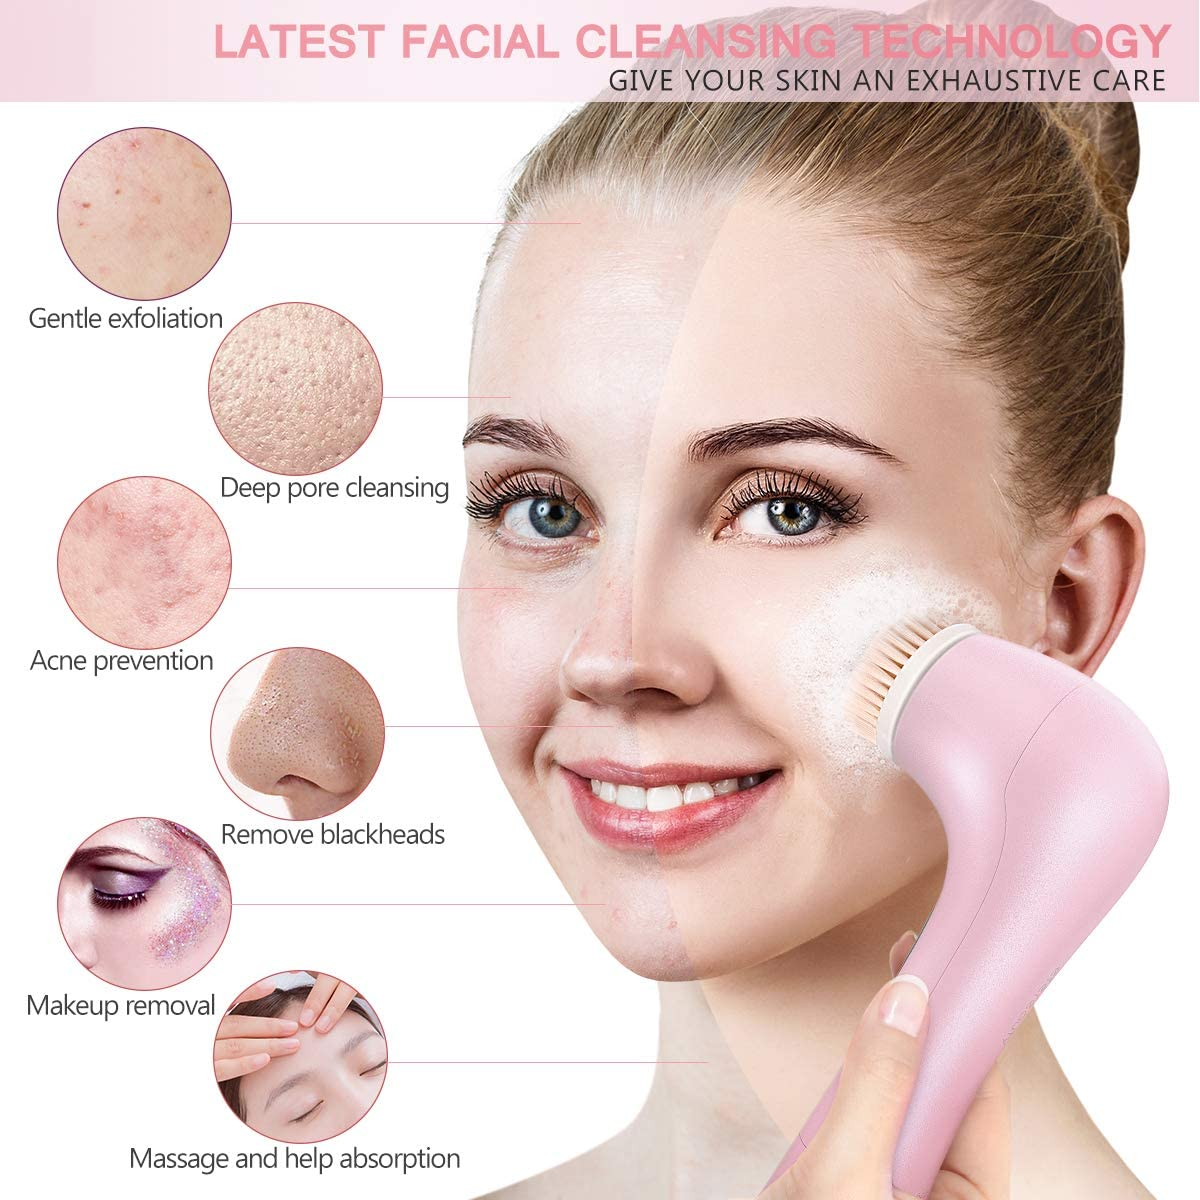 Facial Cleansing Brush, ETEREAUTY Spin Brush for Deep Cleansing Exfoliation, Facial Cleanser Brush for Massaging, Skin Exfoliation (Pink)